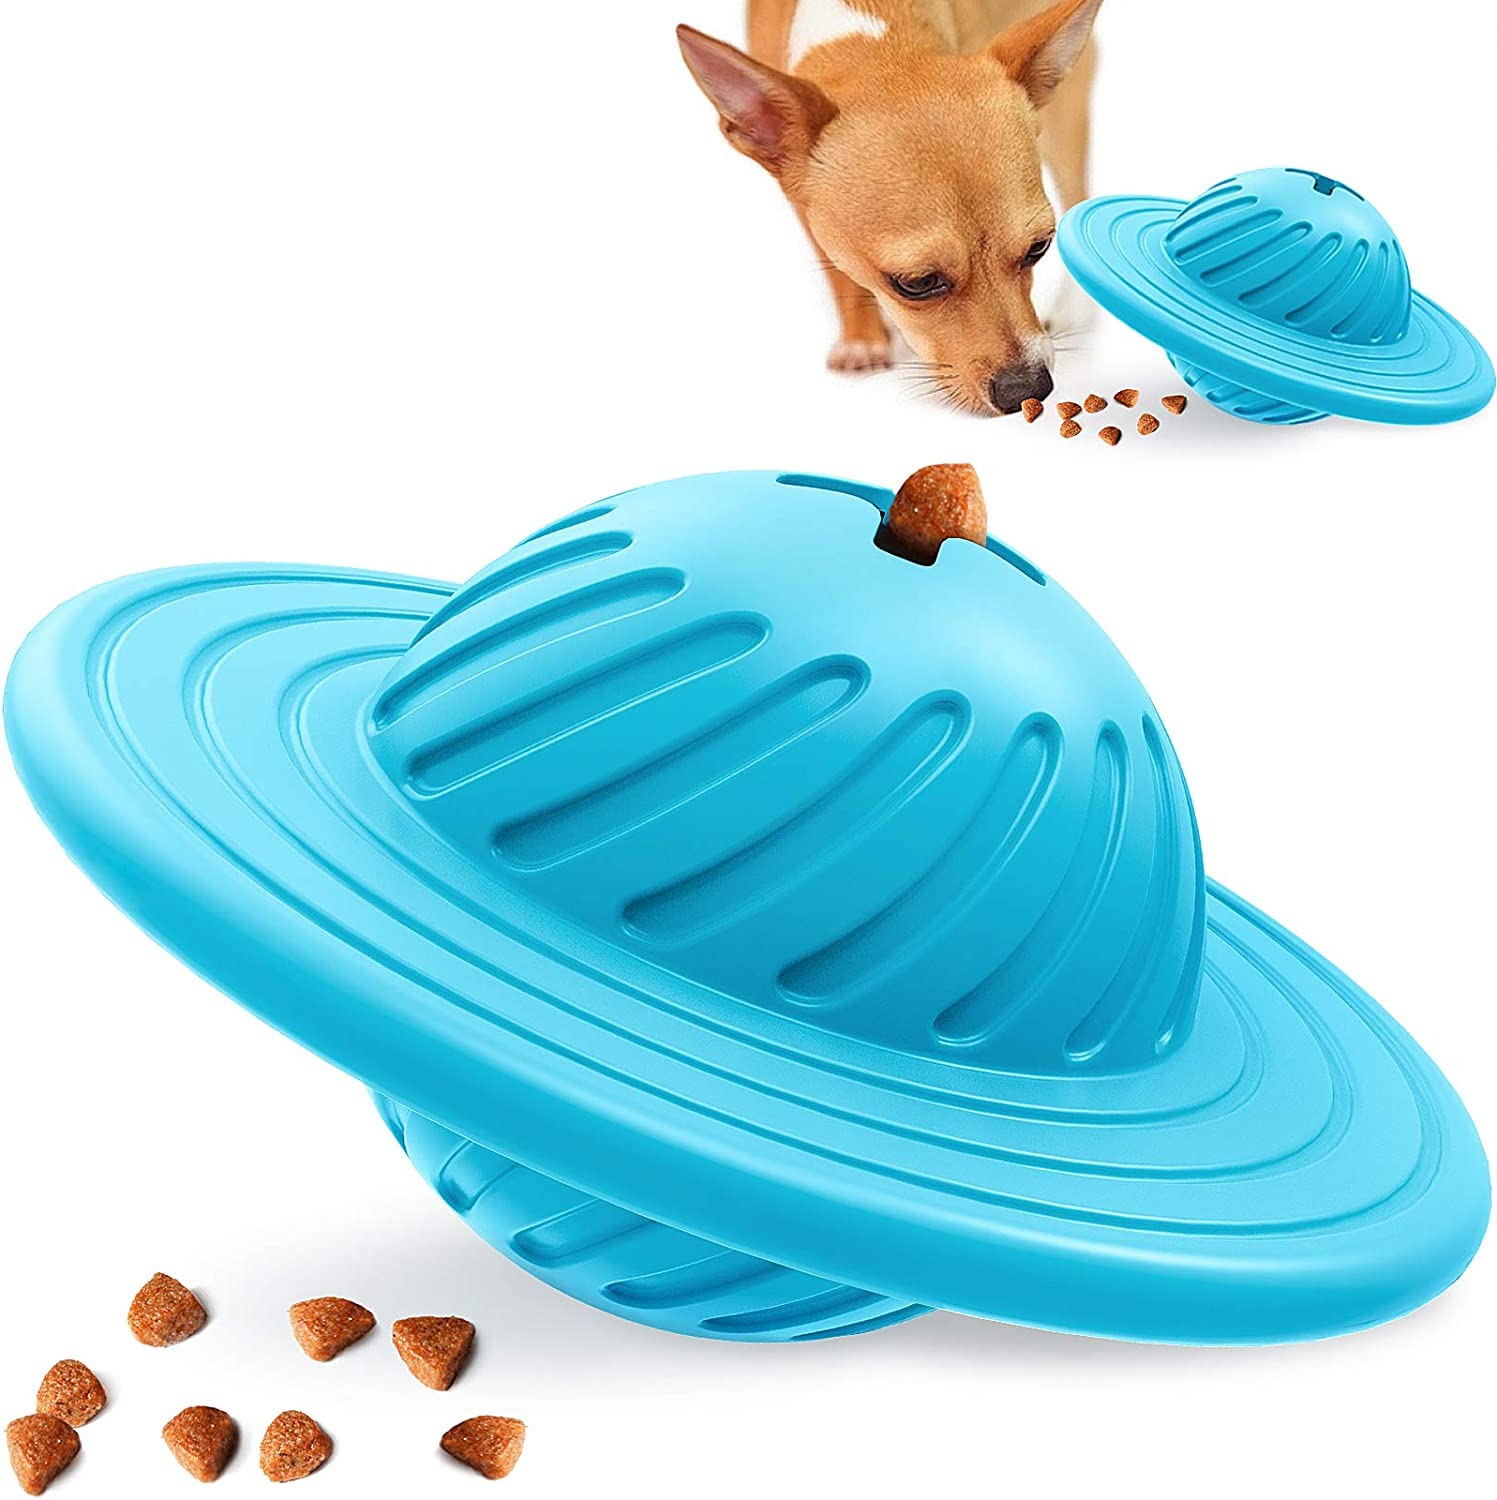 Wisedom Interactive Dog Toy IQ Treat Ball Food Dispensing Puzzle Toy for Medium Large Dogs Playing Chasing Chewing